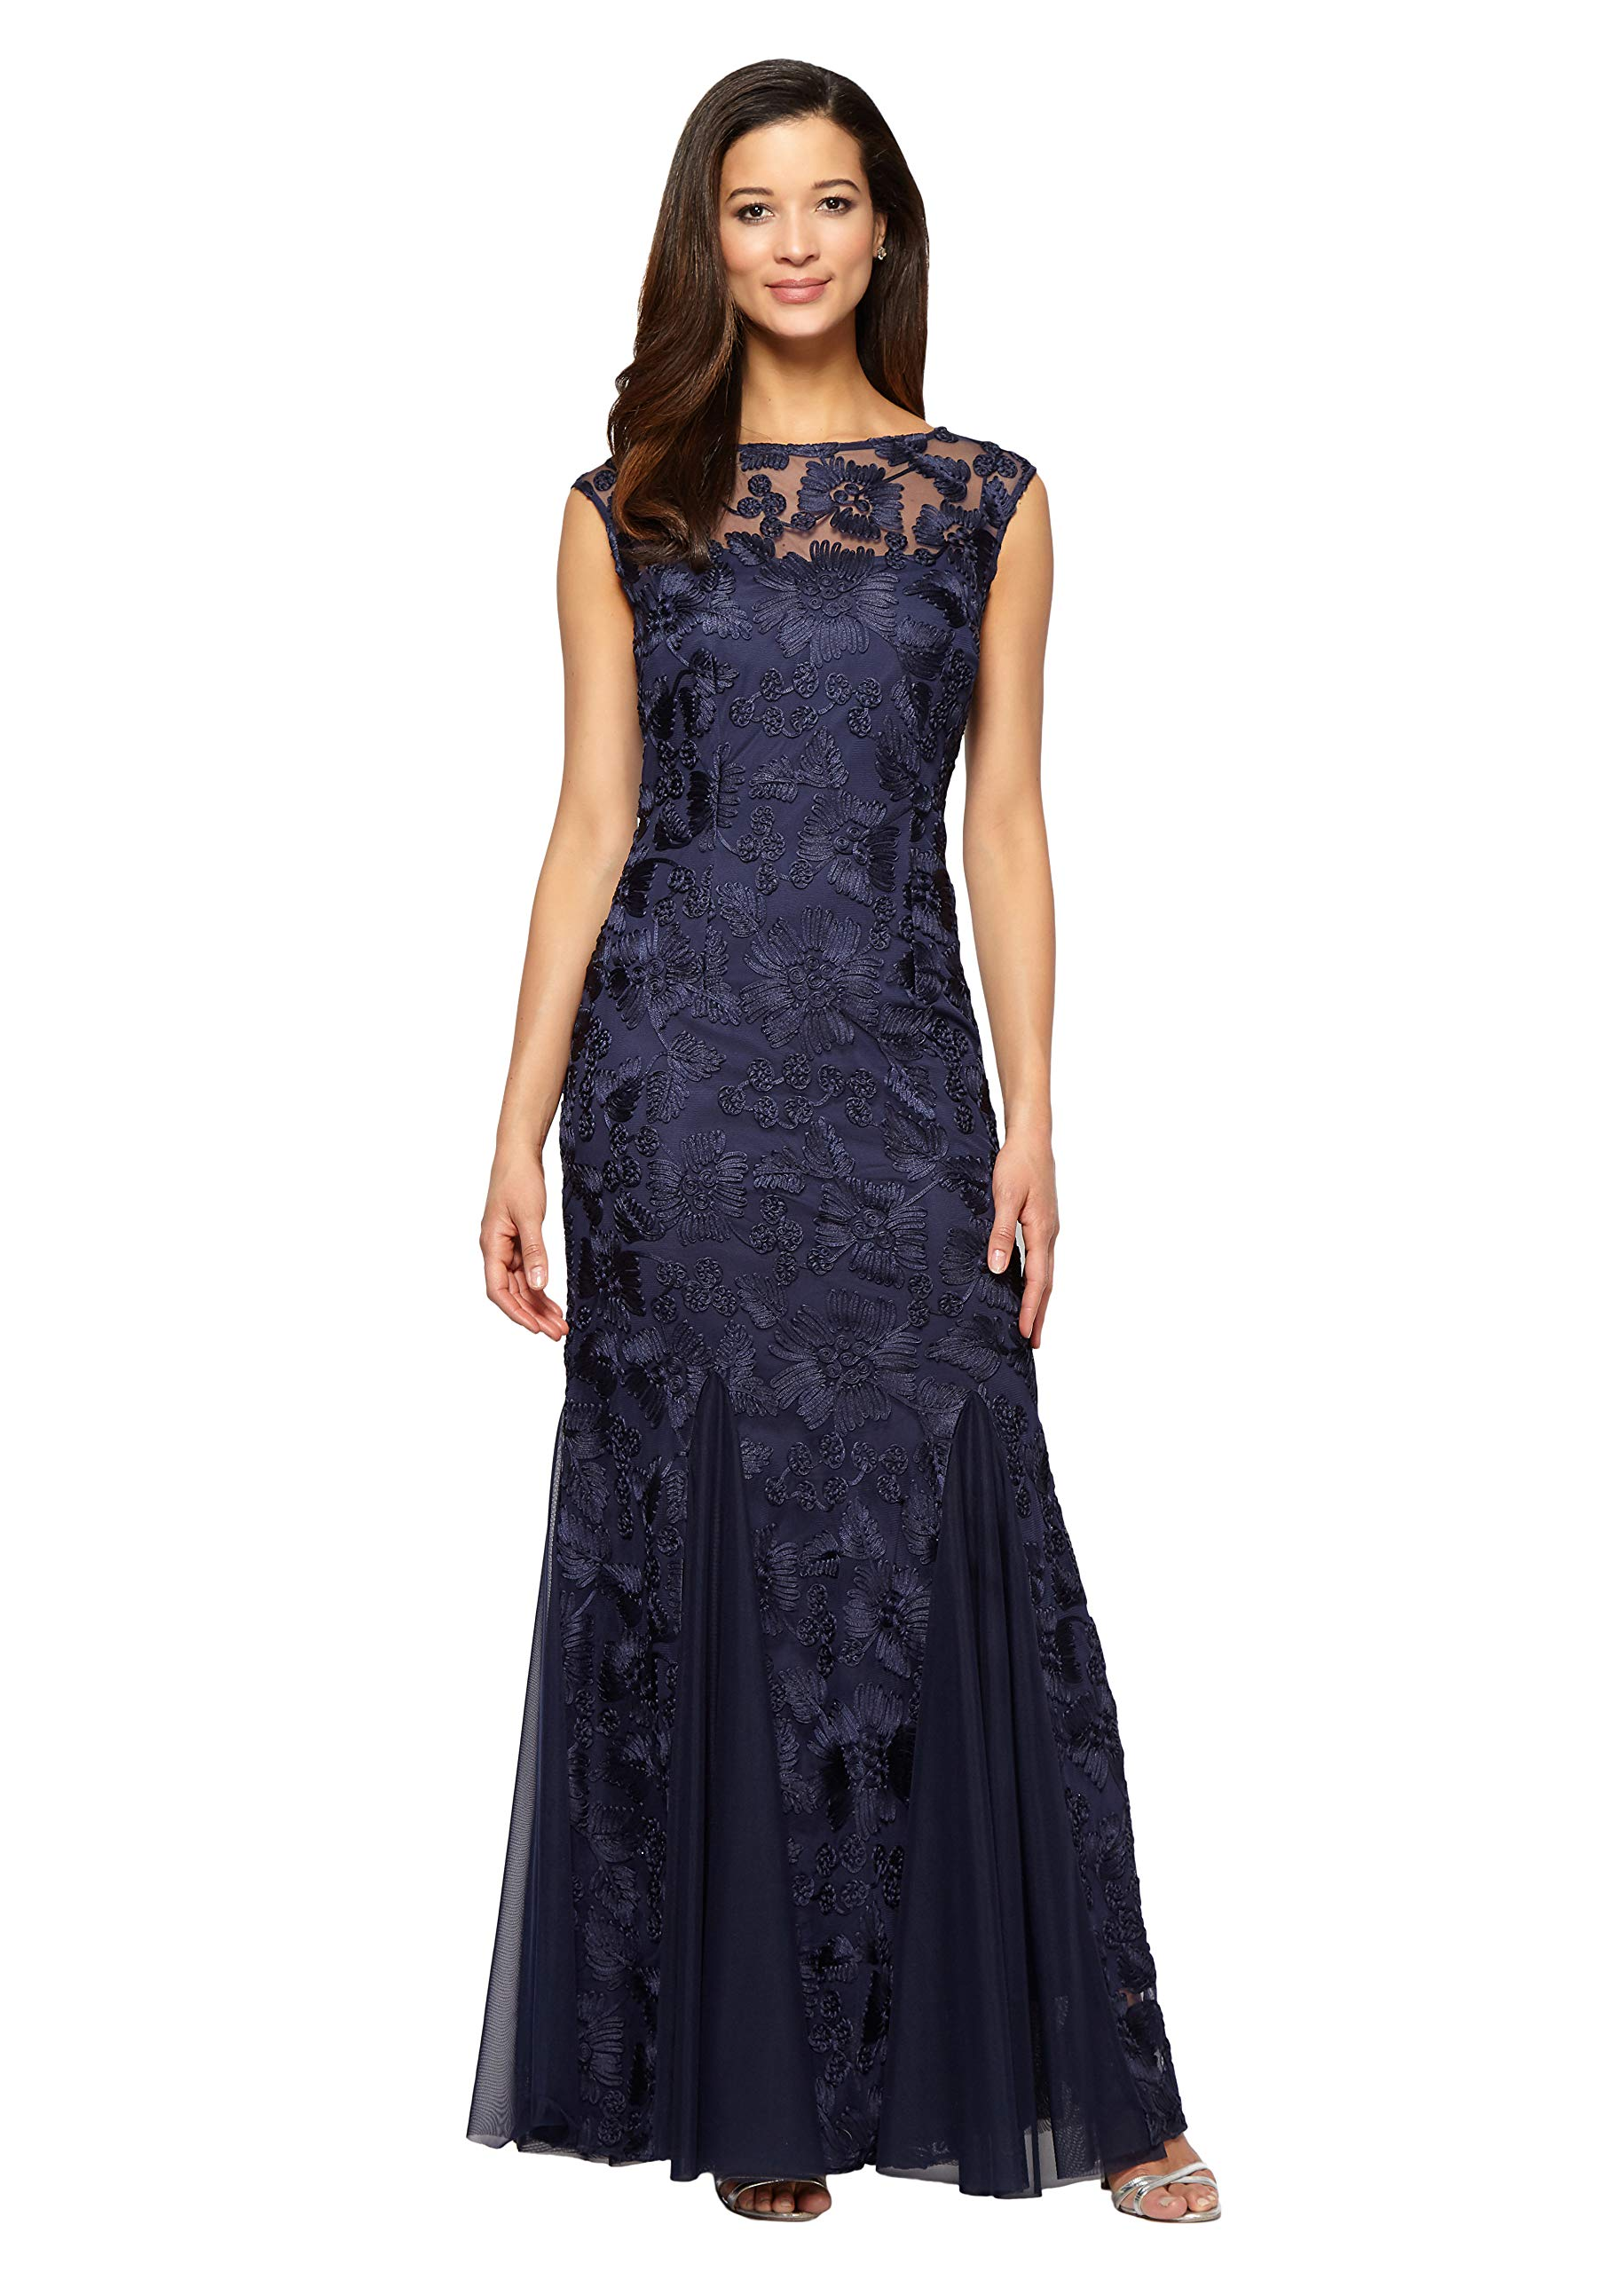 Mother Of The Bride Dresses - Women's Long Fit And Flare Dress Godet Detail